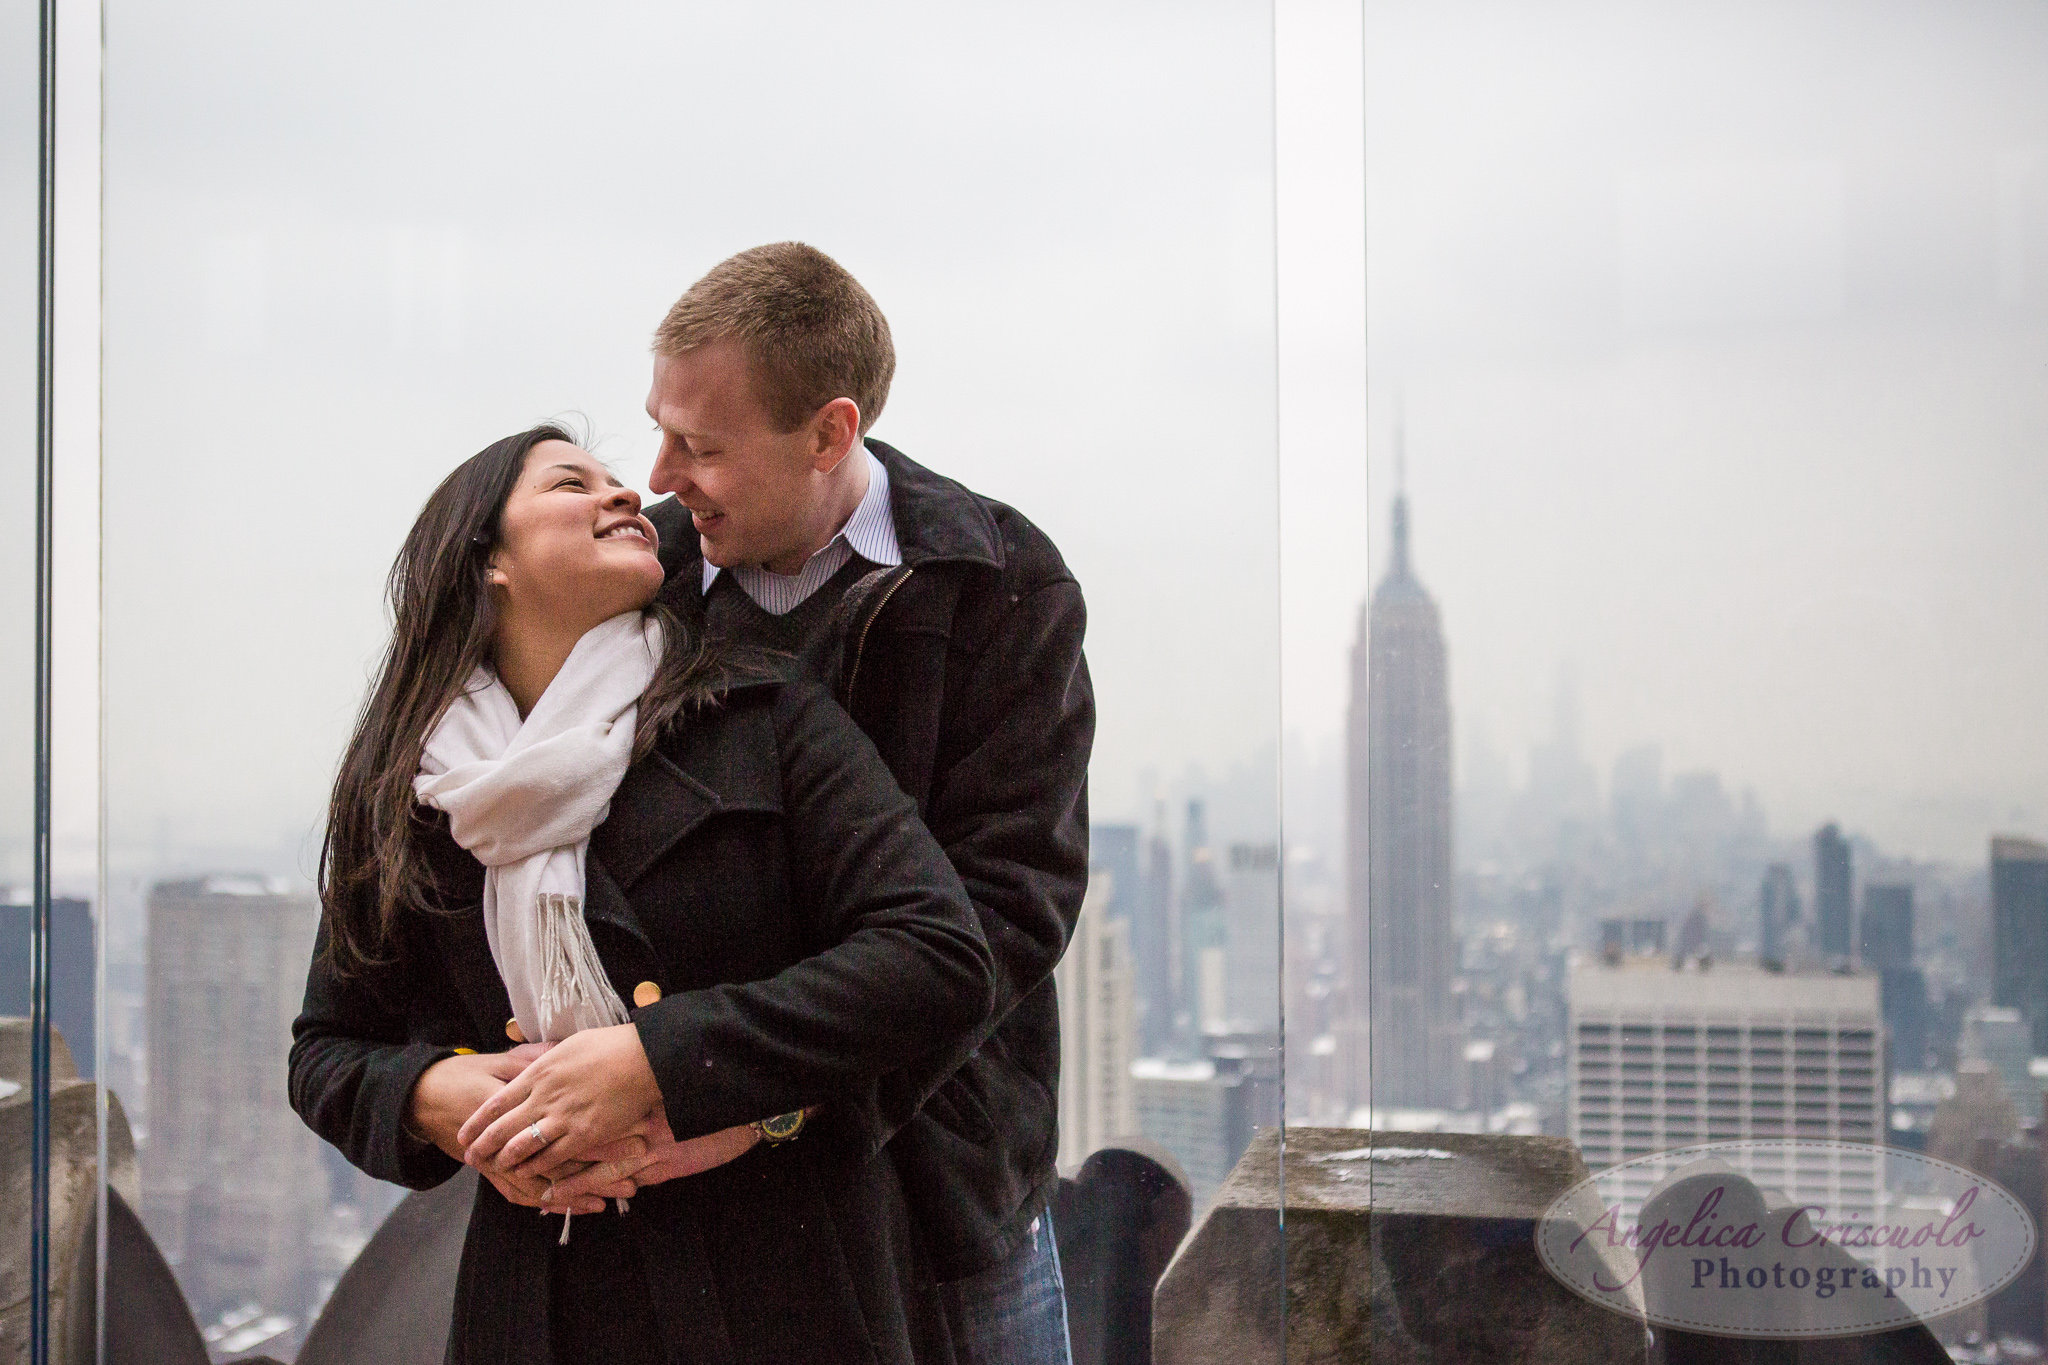 Engagement photos at the Top of the Rock Rockefeller Center